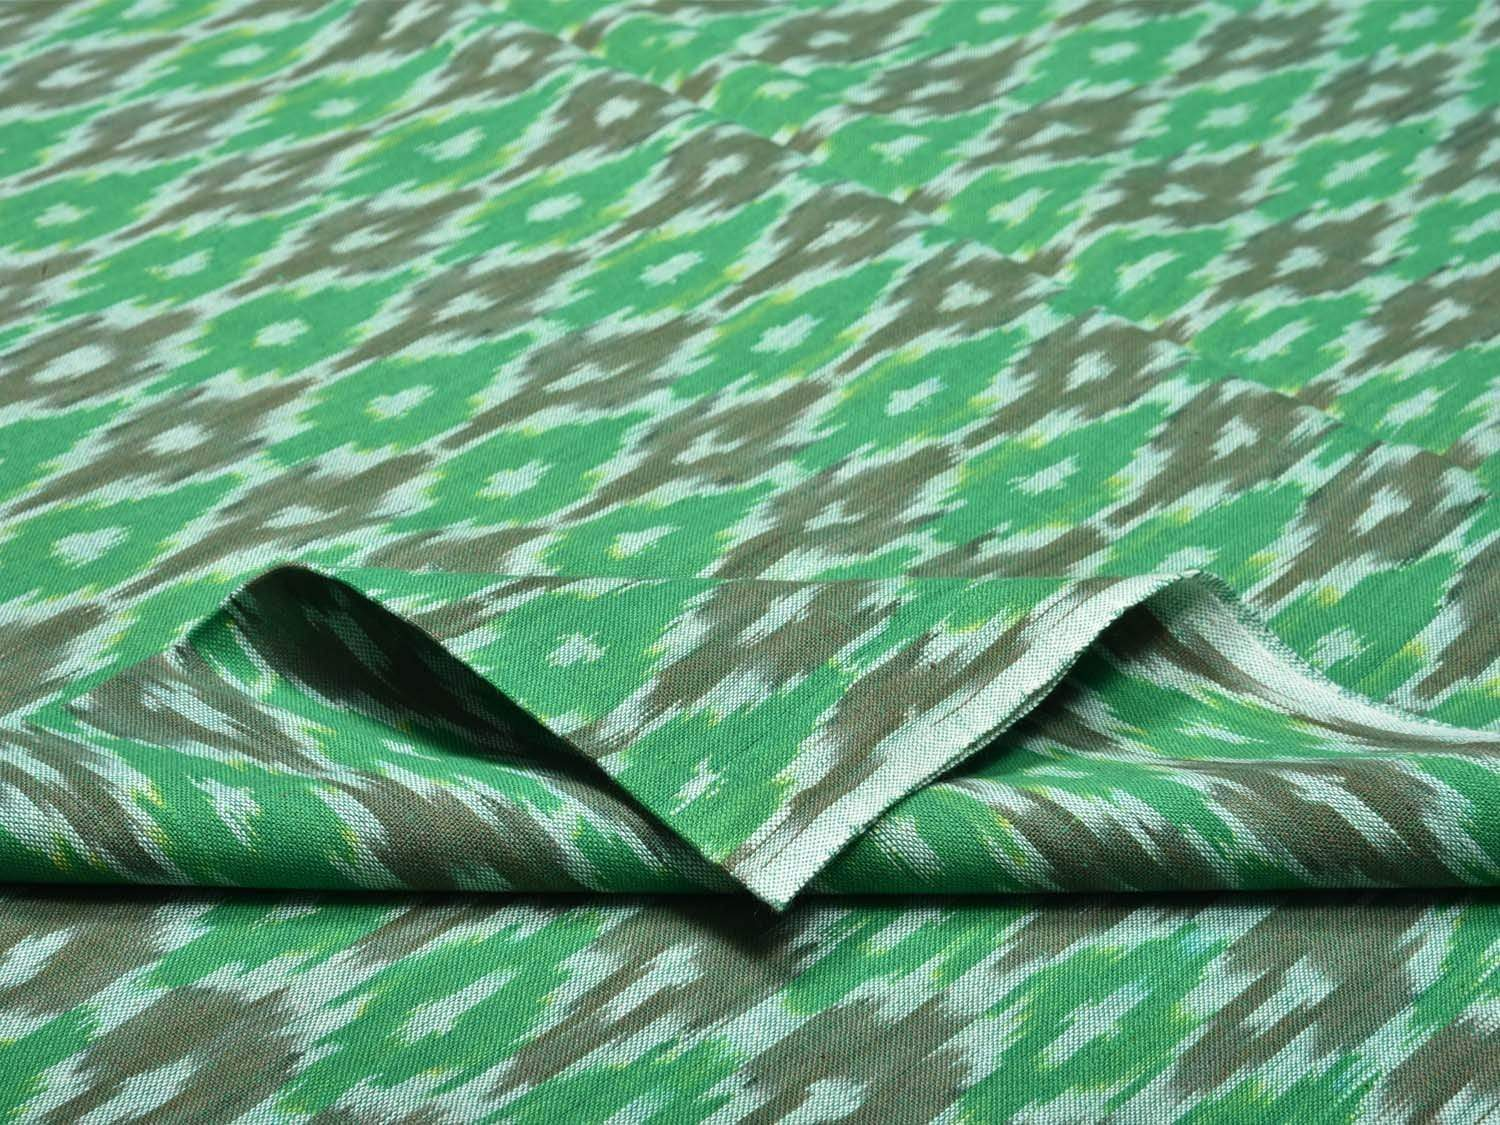 Green Pochampally Ikat Cotton Handloom Fabric Material with Grill Design f0145